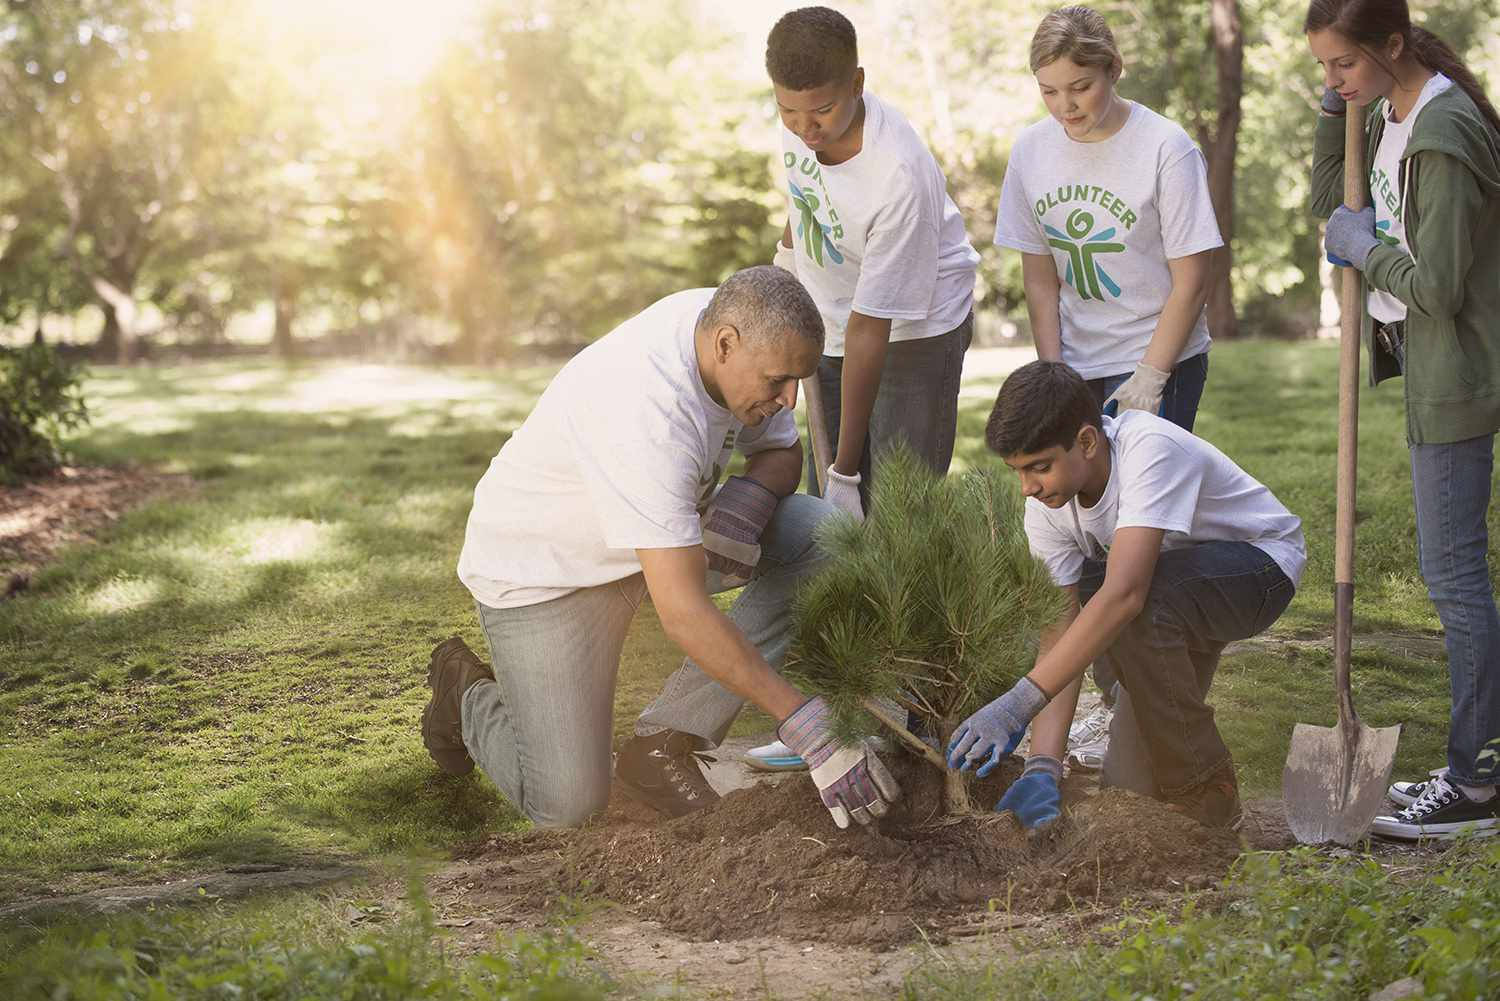 Volunteers planting a tree in a park